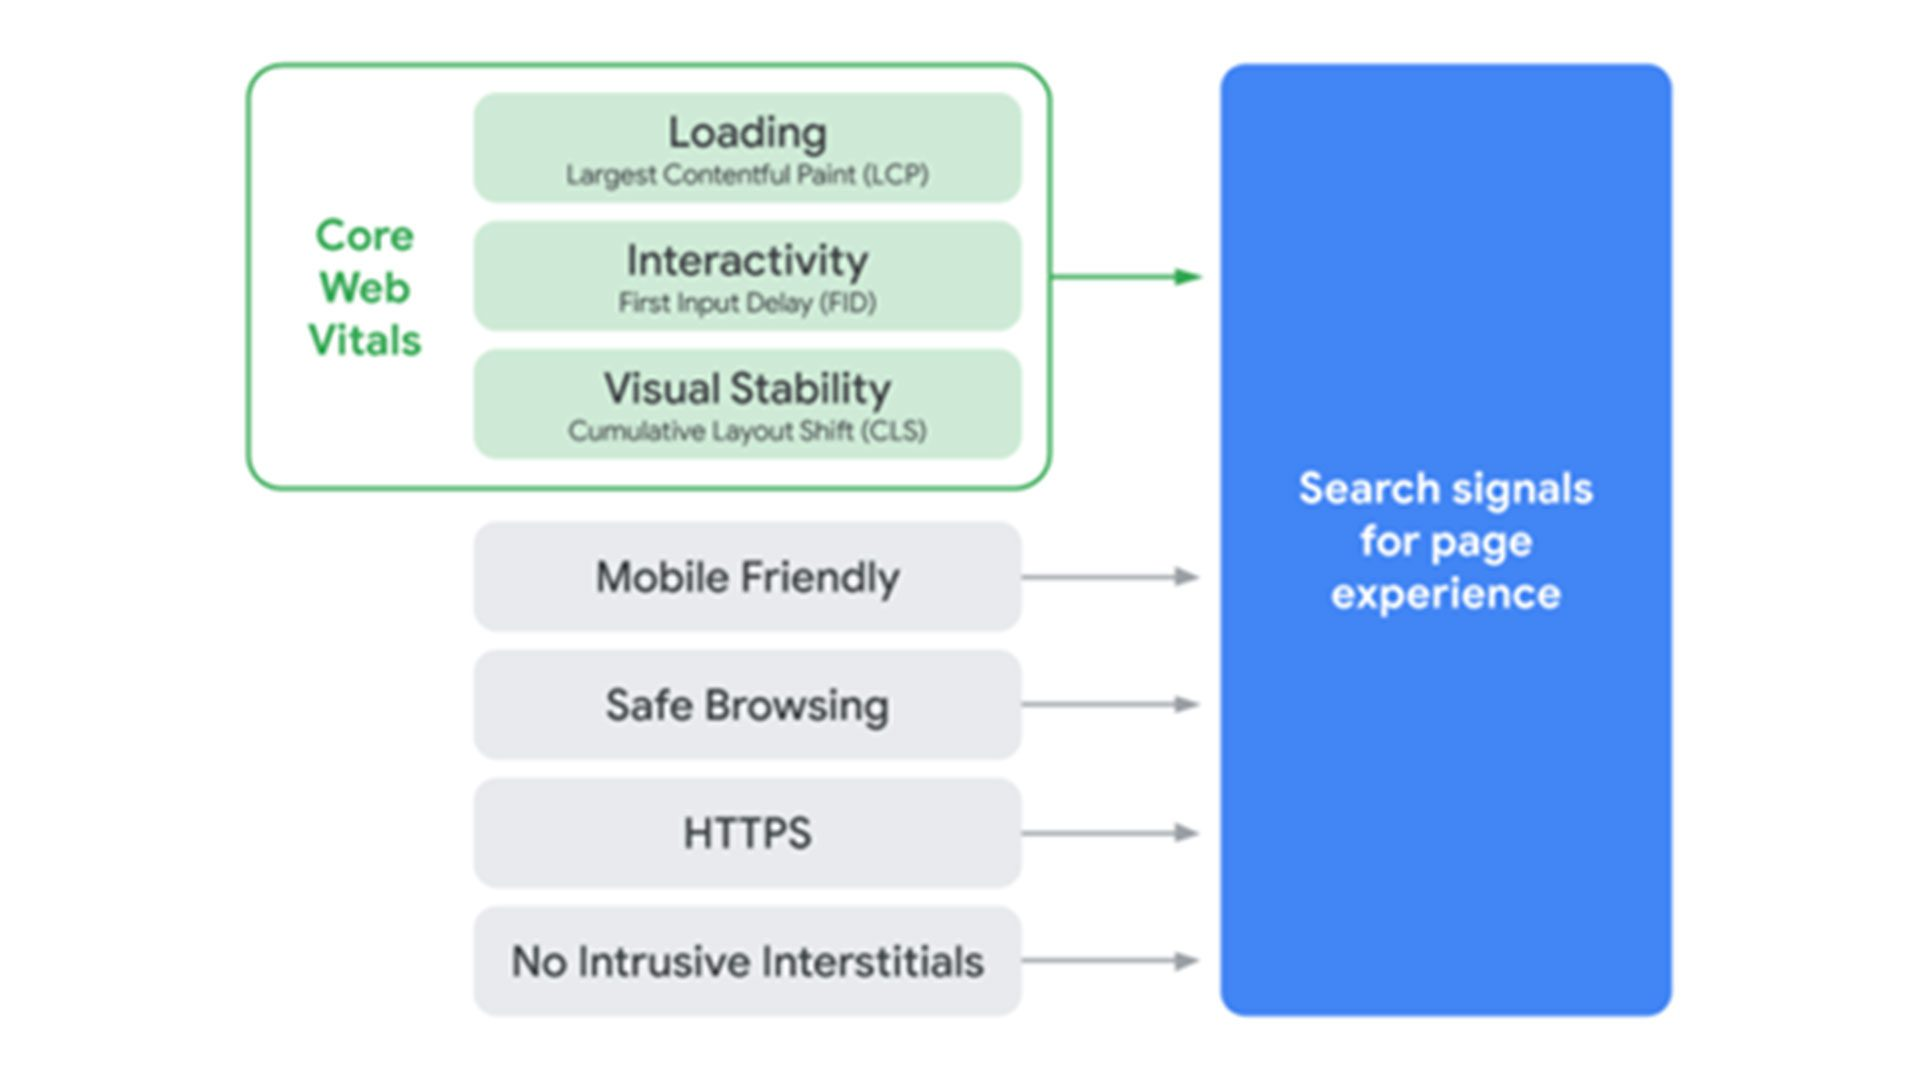 The seven search signals for page experience